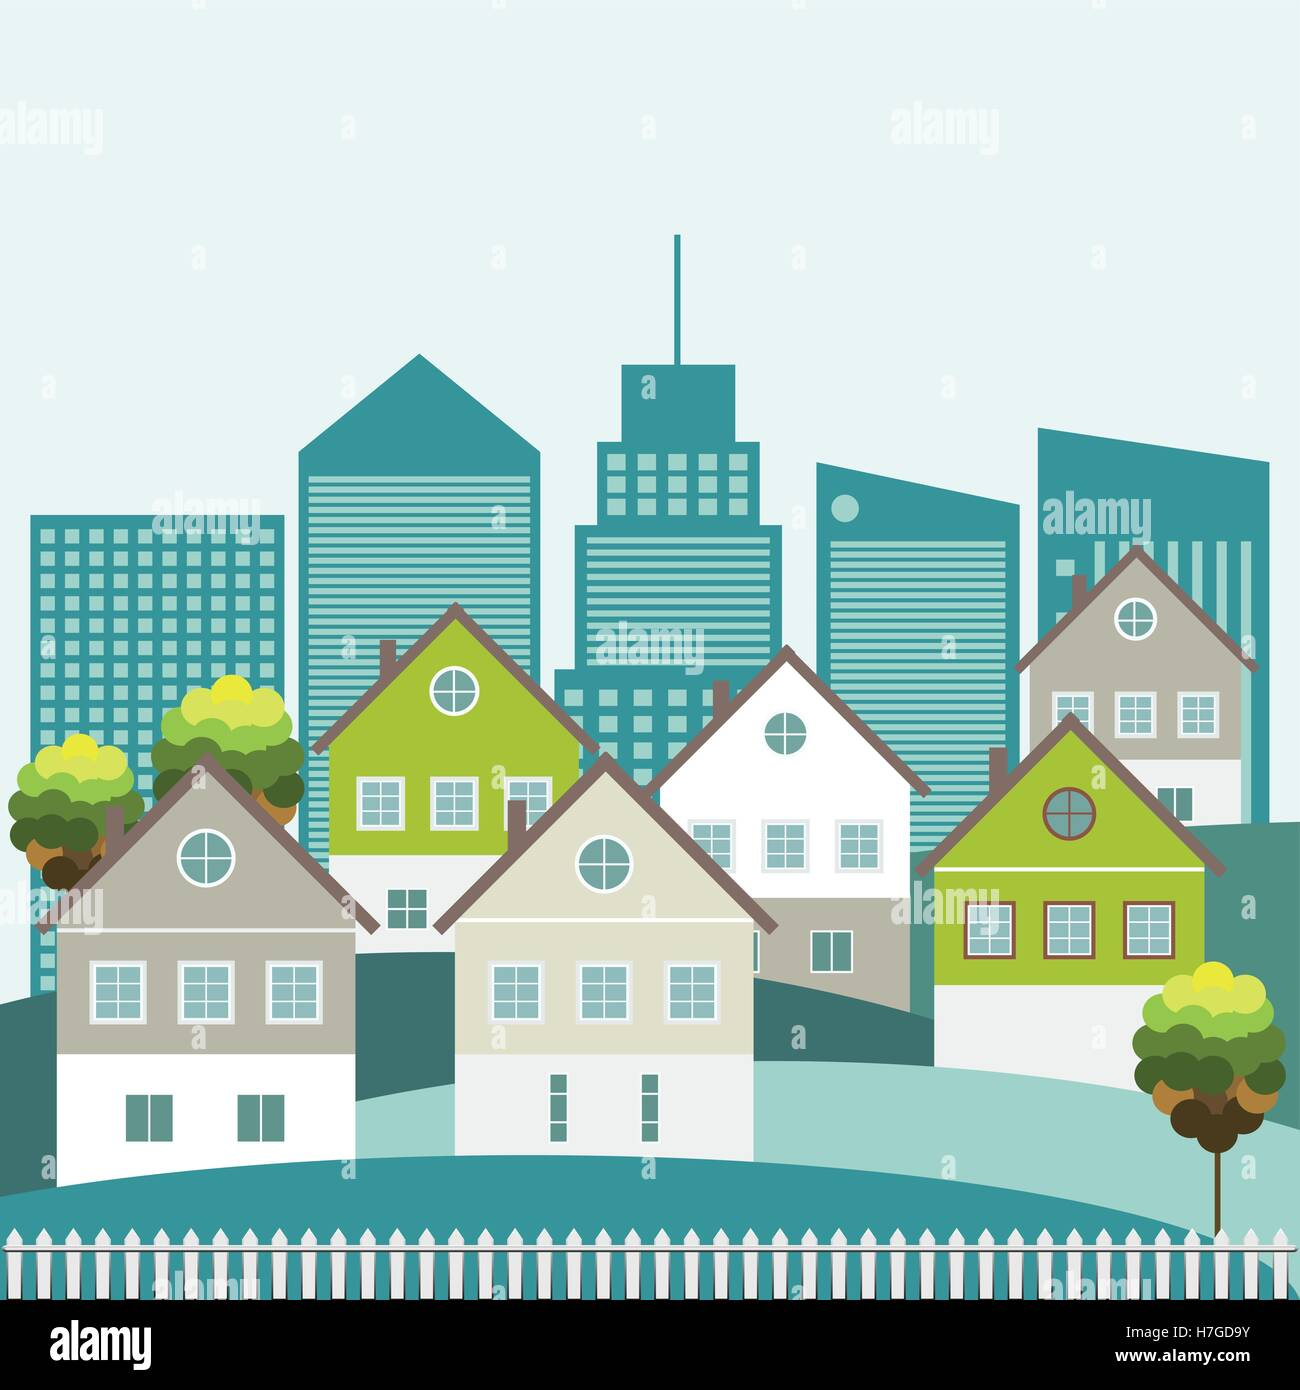 Colorful Houses For Sale / Rent. Real Estate. Energy Efficiency, Think Green Concept - Stock Image